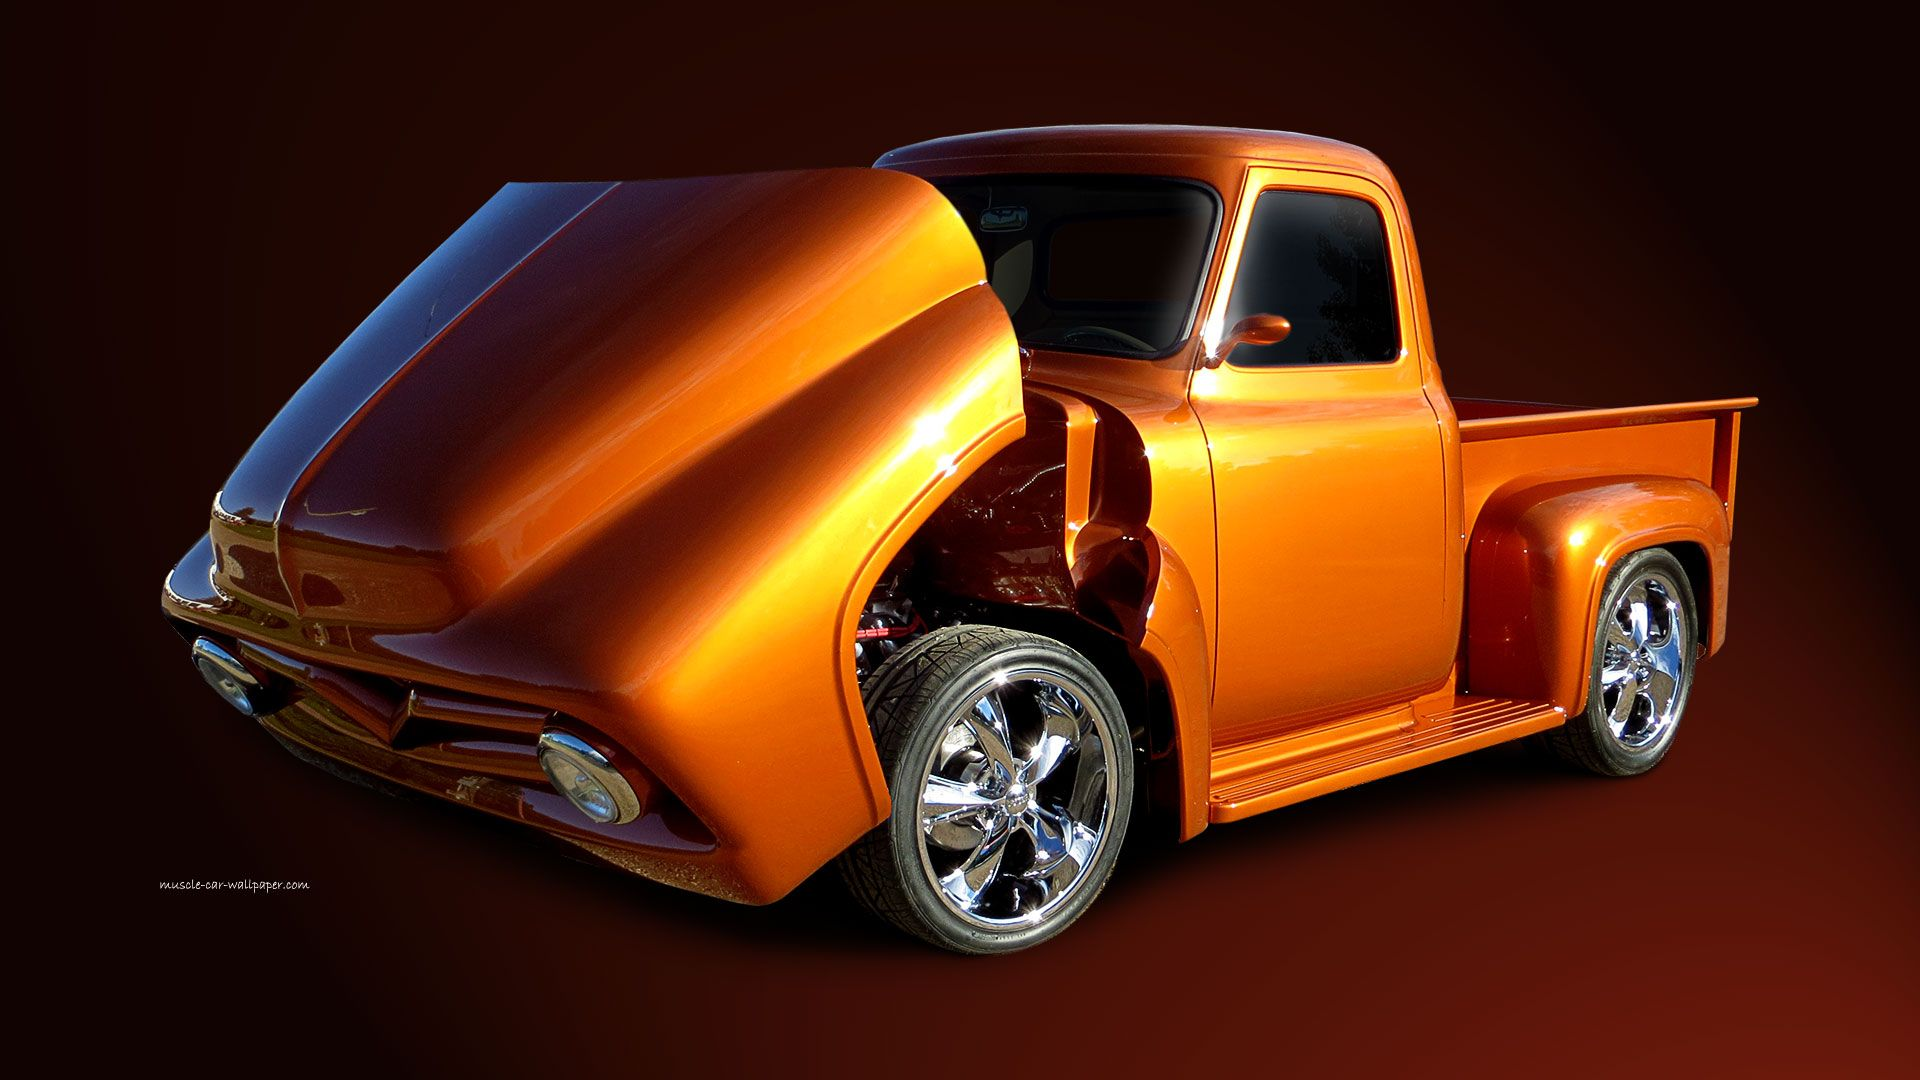 Chip foose cars wallpaper google search virtual car show chip foose cars wallpaper google search voltagebd Image collections